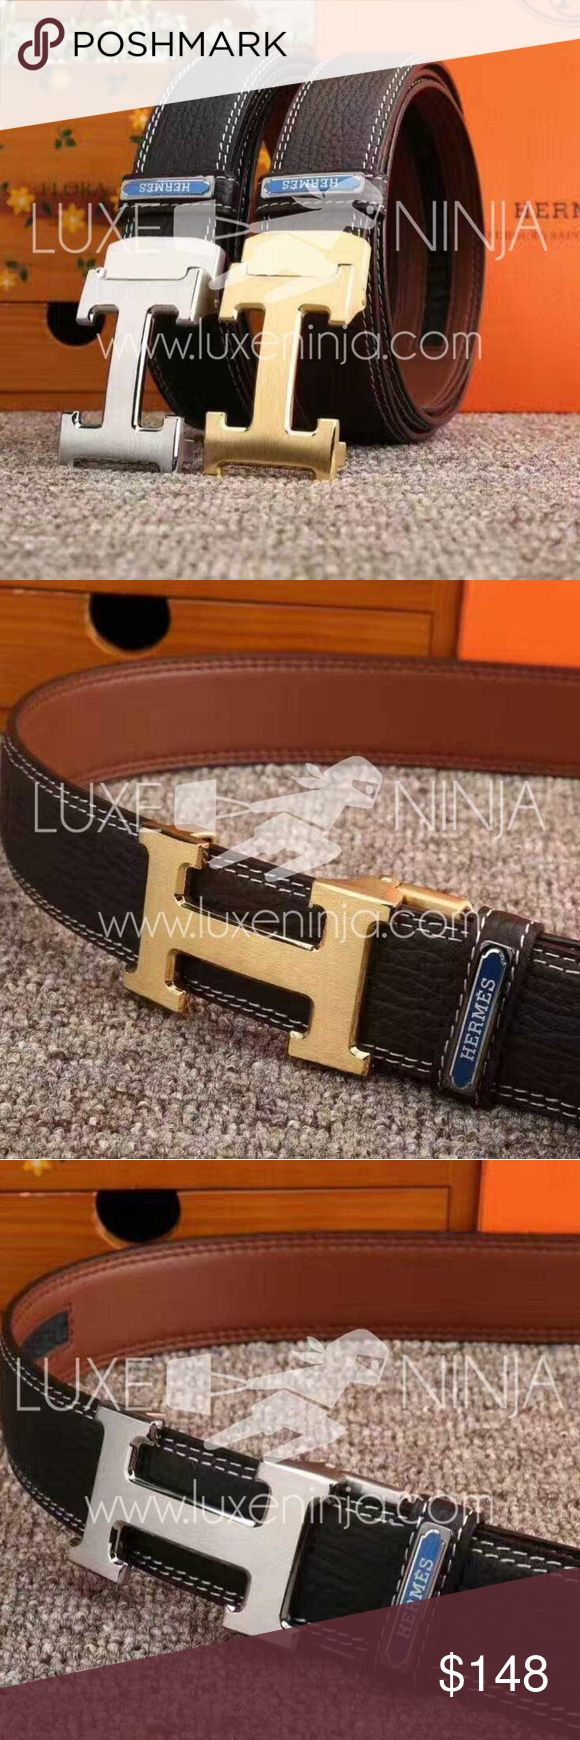 Hermes Men's Belt Classic Hermes Mens Belt.  Multiple sizes in either silver or gold hardware.  Check out our website for more options! Hermes Accessories Belts